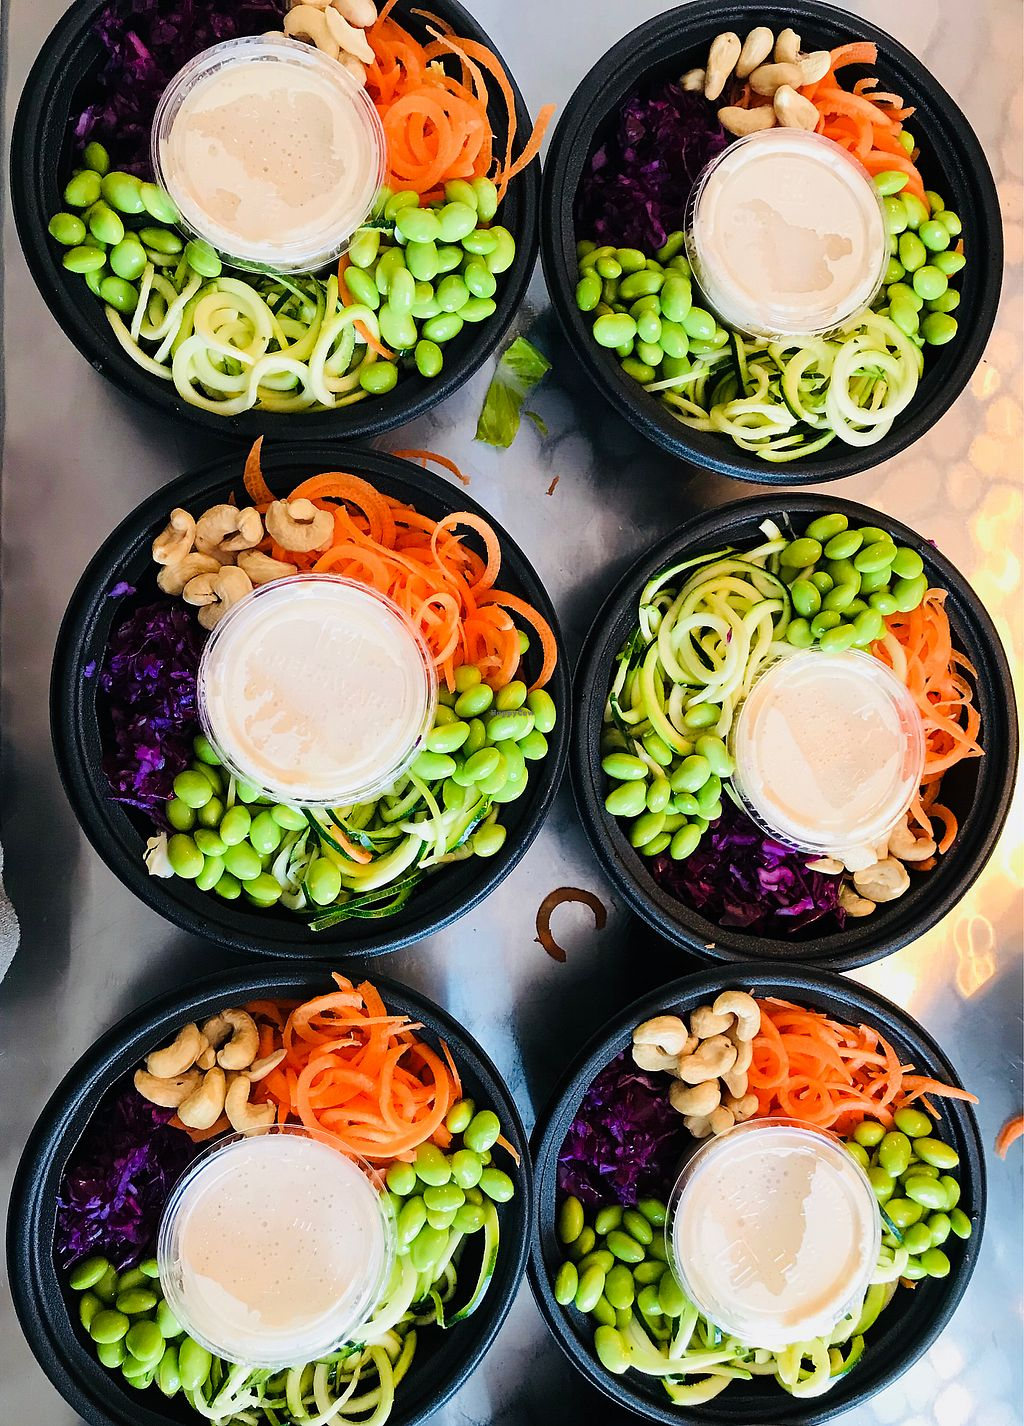 """Photo of Green Goddess  by <a href=""""/members/profile/MorganMitchell"""">MorganMitchell</a> <br/>Asian noodle salads <br/> December 18, 2017  - <a href='/contact/abuse/image/107188/336712'>Report</a>"""